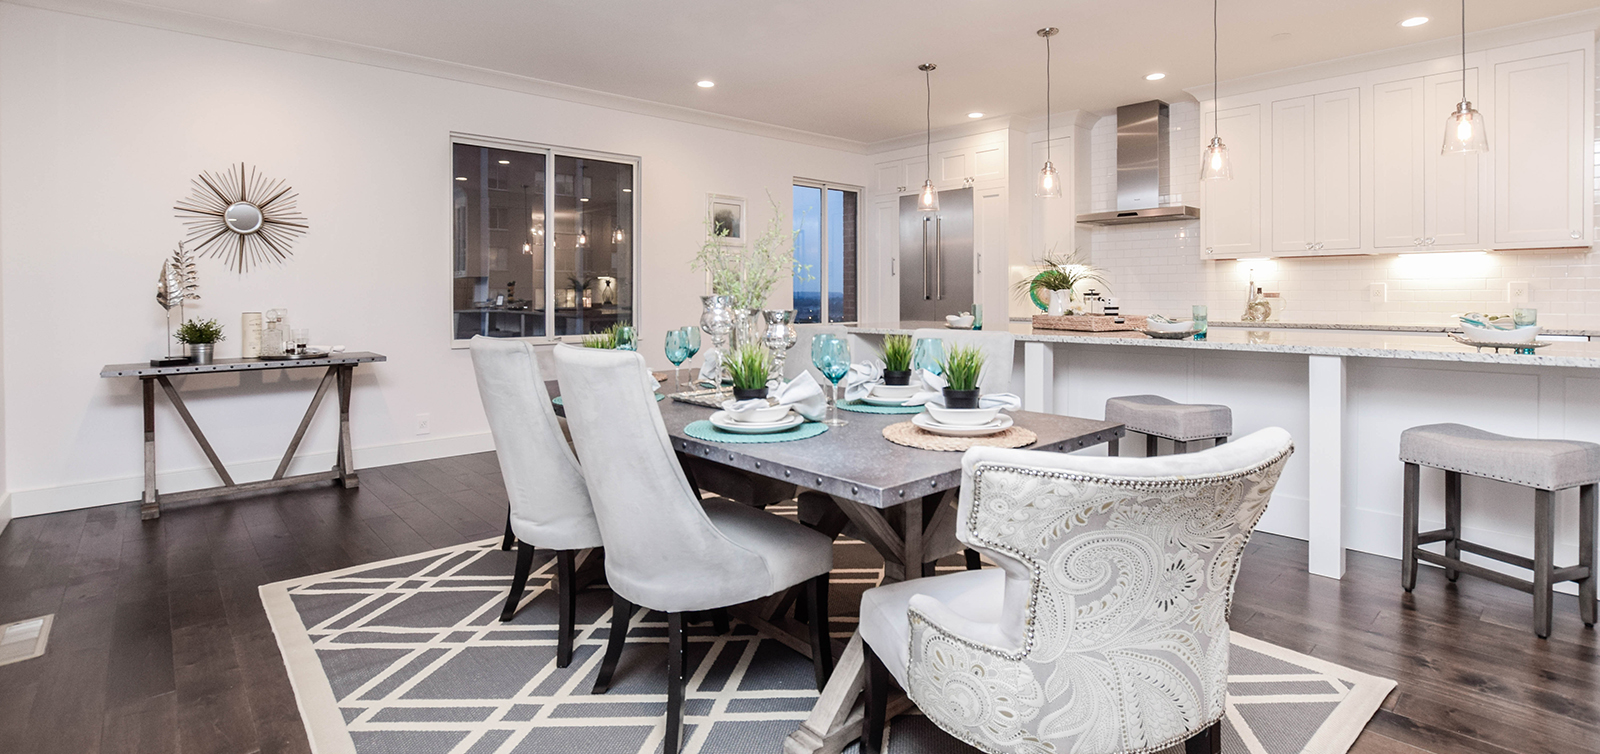 hometenders home staging & design of st louis